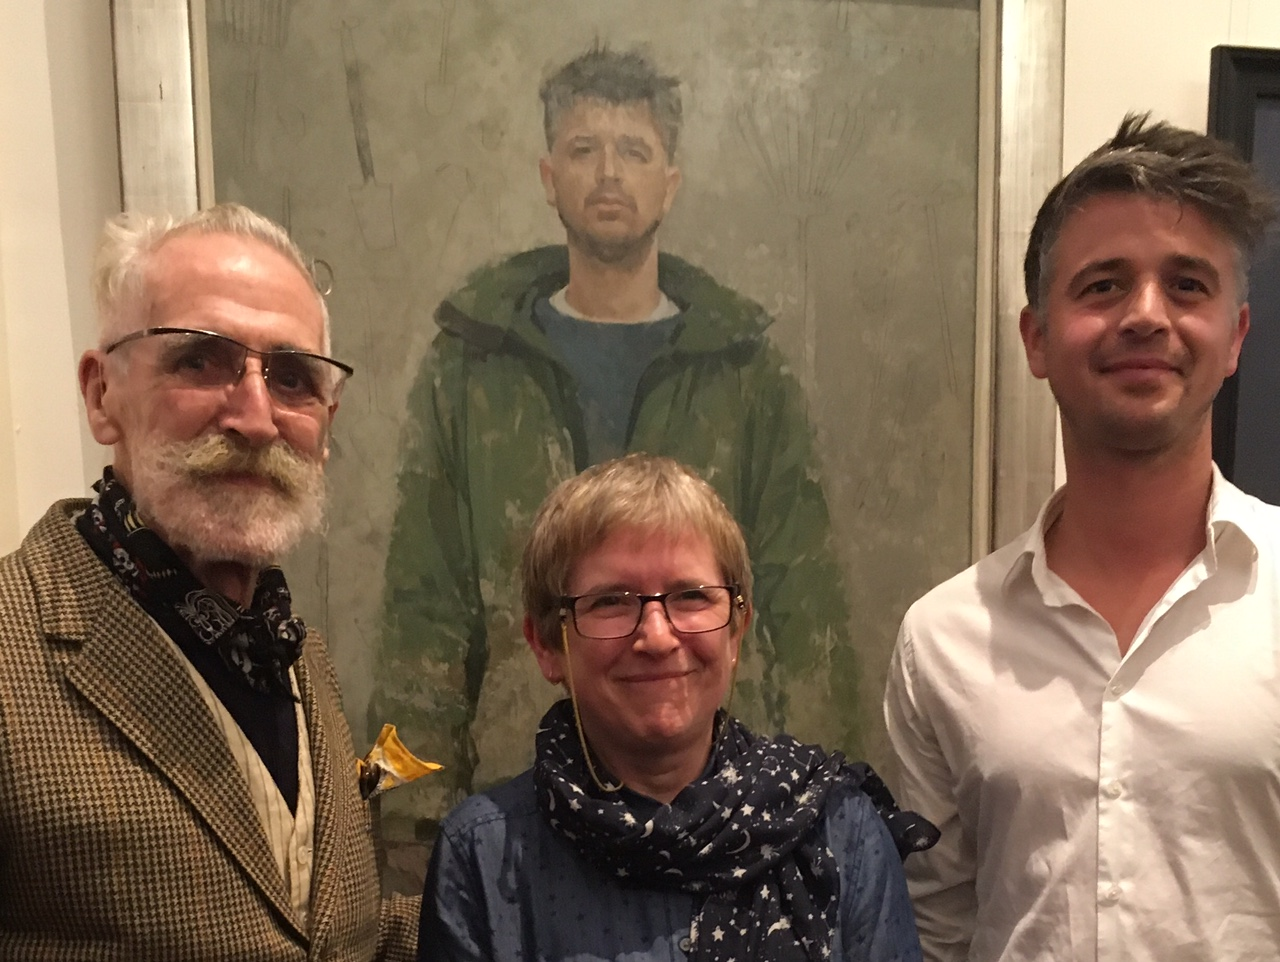 Helen Wilson stands in fron of her winning portrait, Jonah of Kittyfield Farm, with SPA Judge John Byrne and Jonah Gaskell, the subject of her painting.